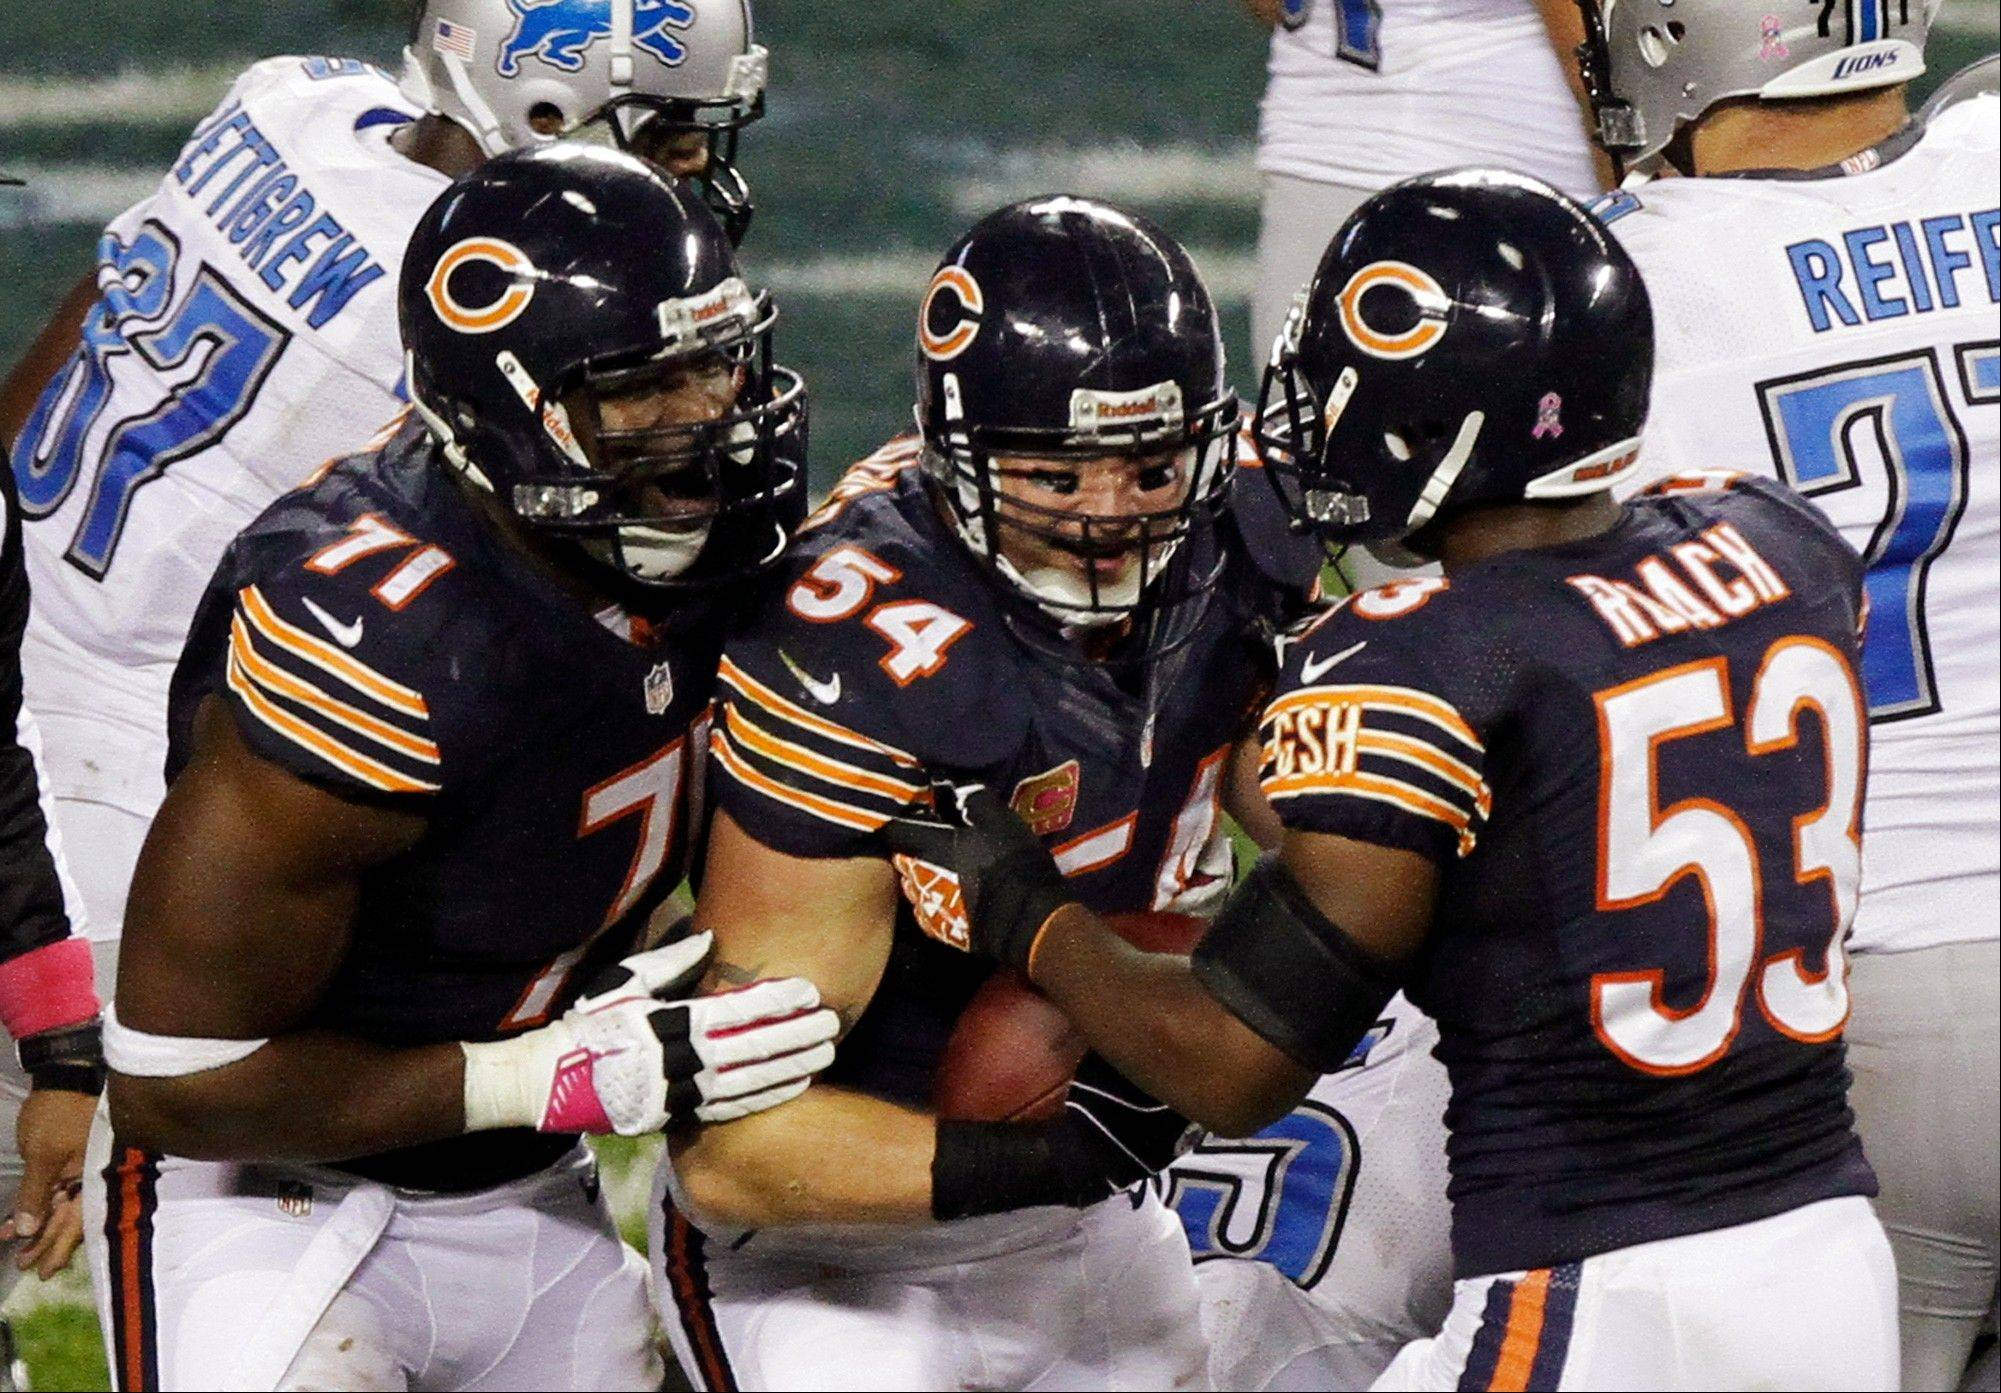 Chicago Bears linebacker Brian Urlacher (54) celebrates with Israel Idonije (71) and Nick Roach (53) after he recovered fumble against the Detroit Lions near the goal line in the second half of an NFL football game in Chicago, Monday, Oct. 22, 2012.